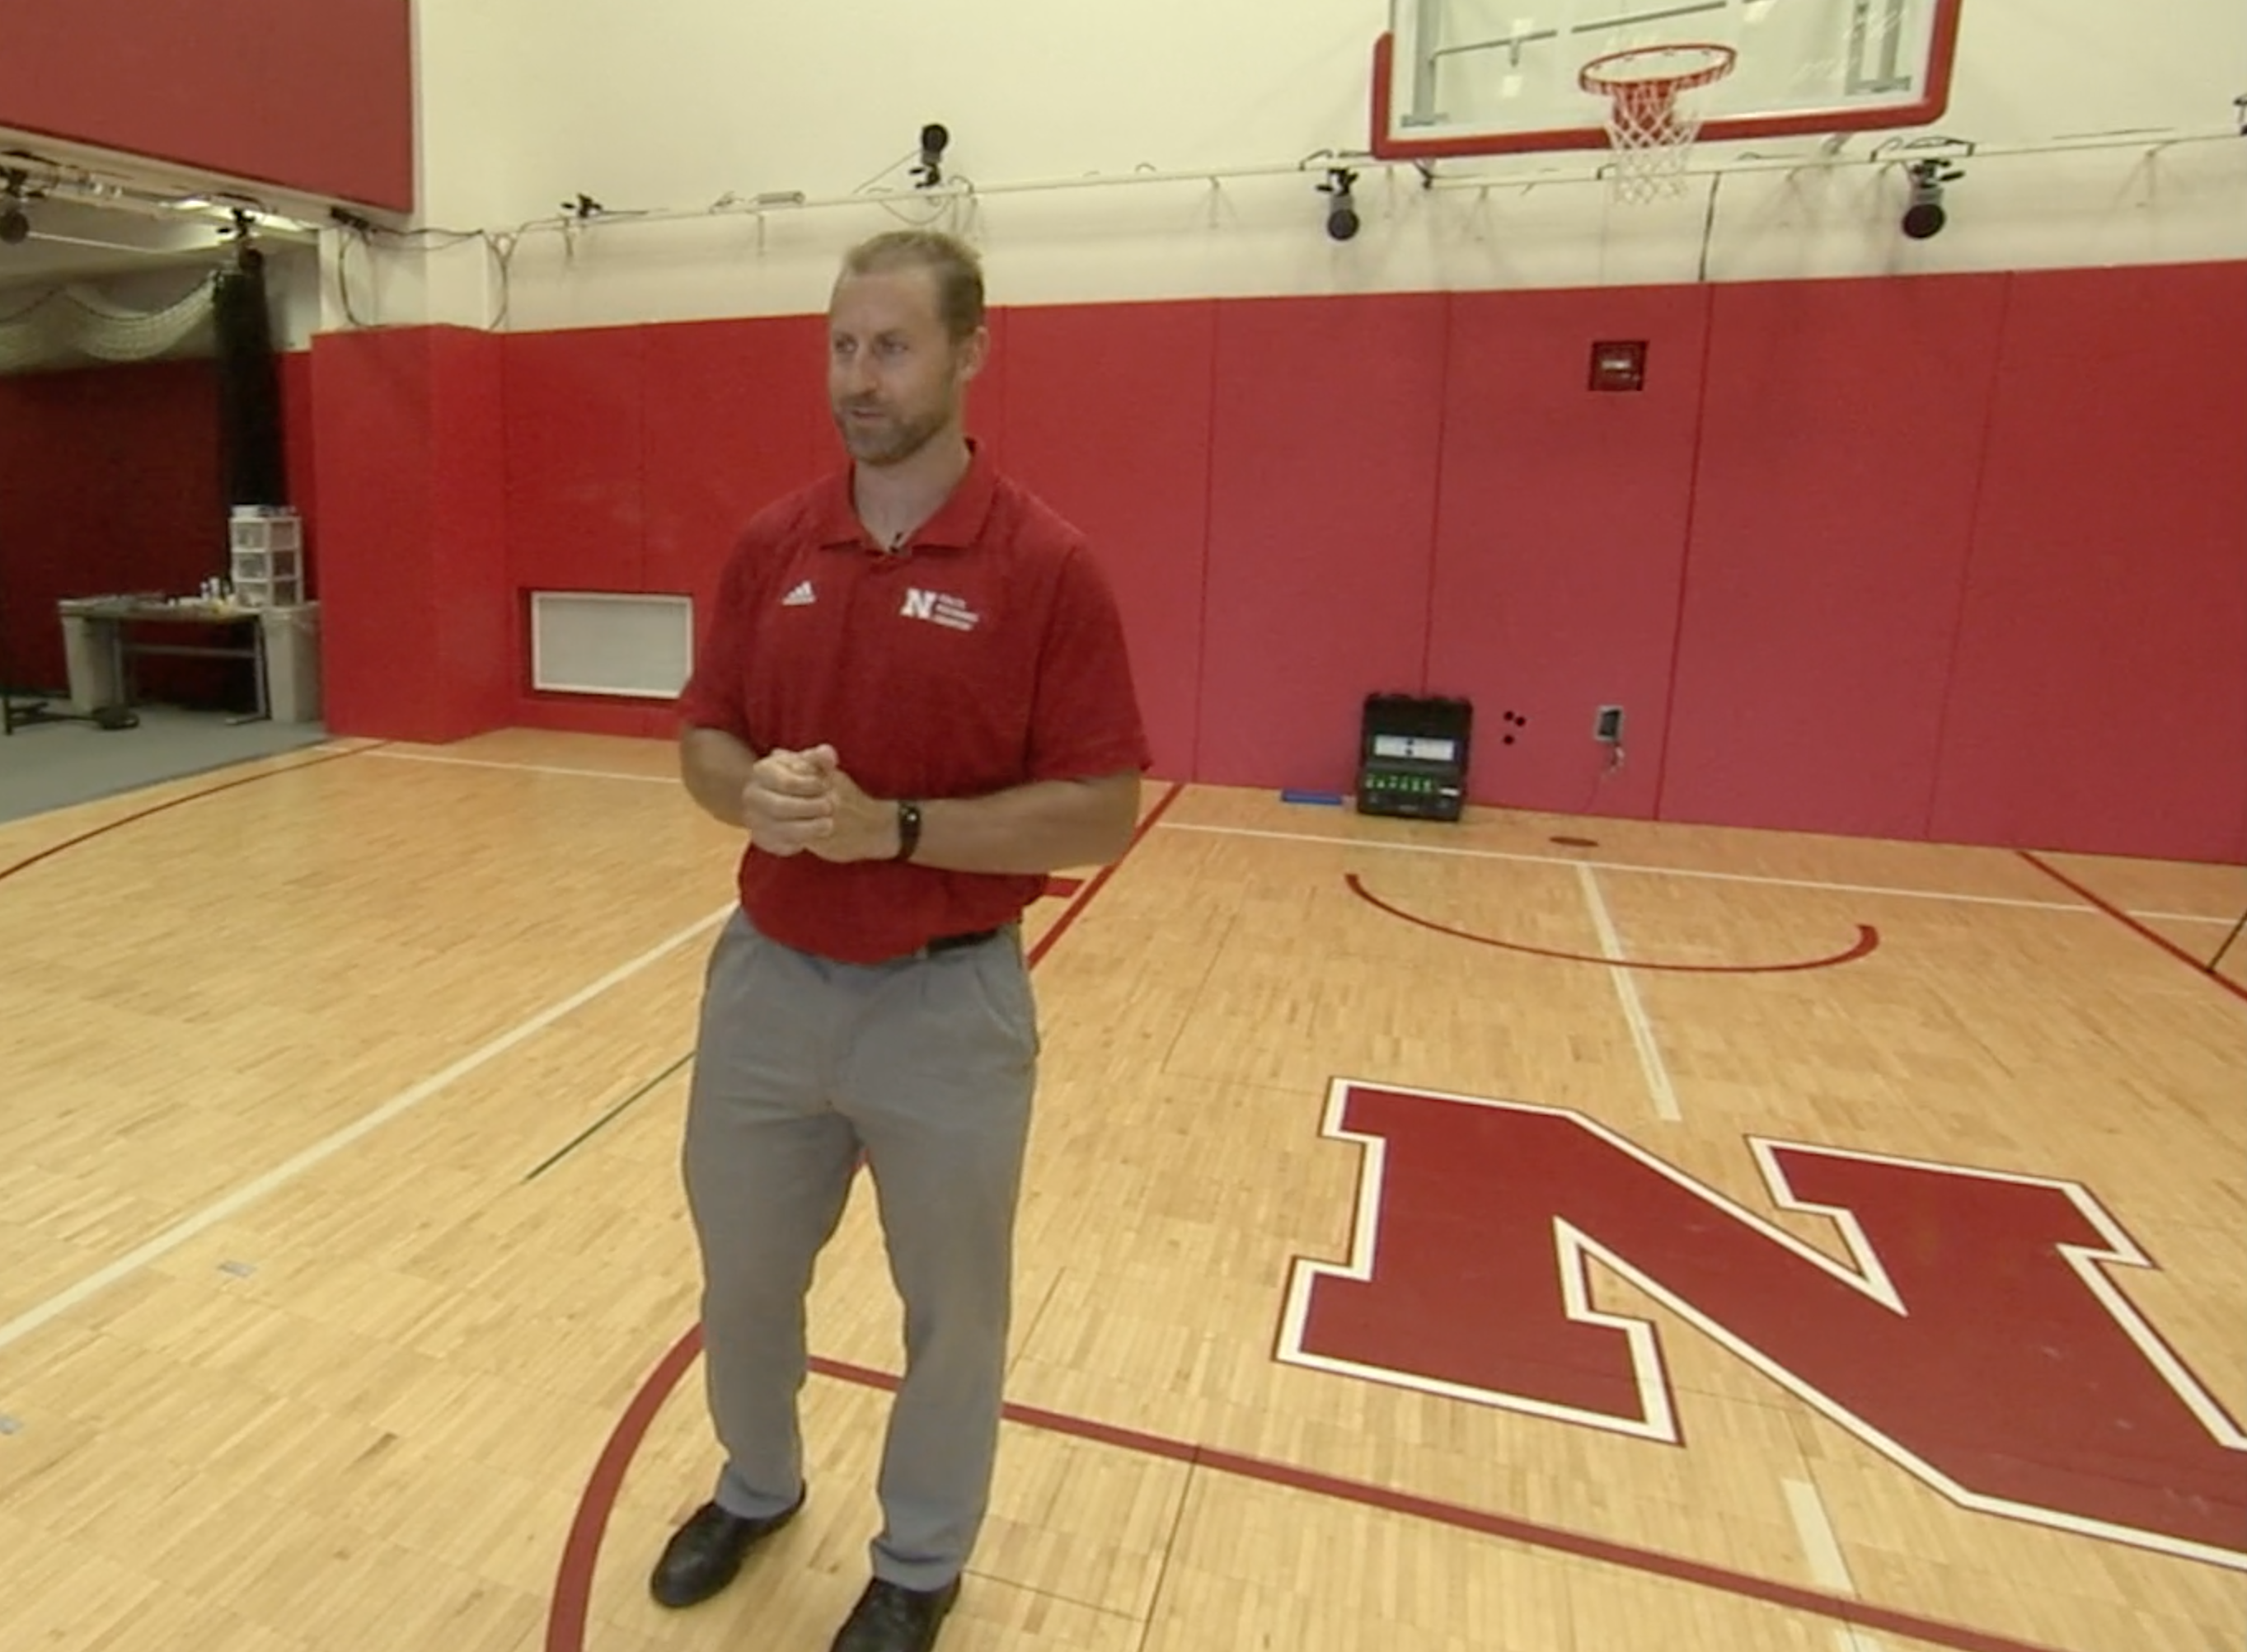 Curt Tomasevicz, assistant professor of practice in biological systems engineering, does some of his research in the Nebraska Athletic Performance Laboratory in Memorial Stadium.